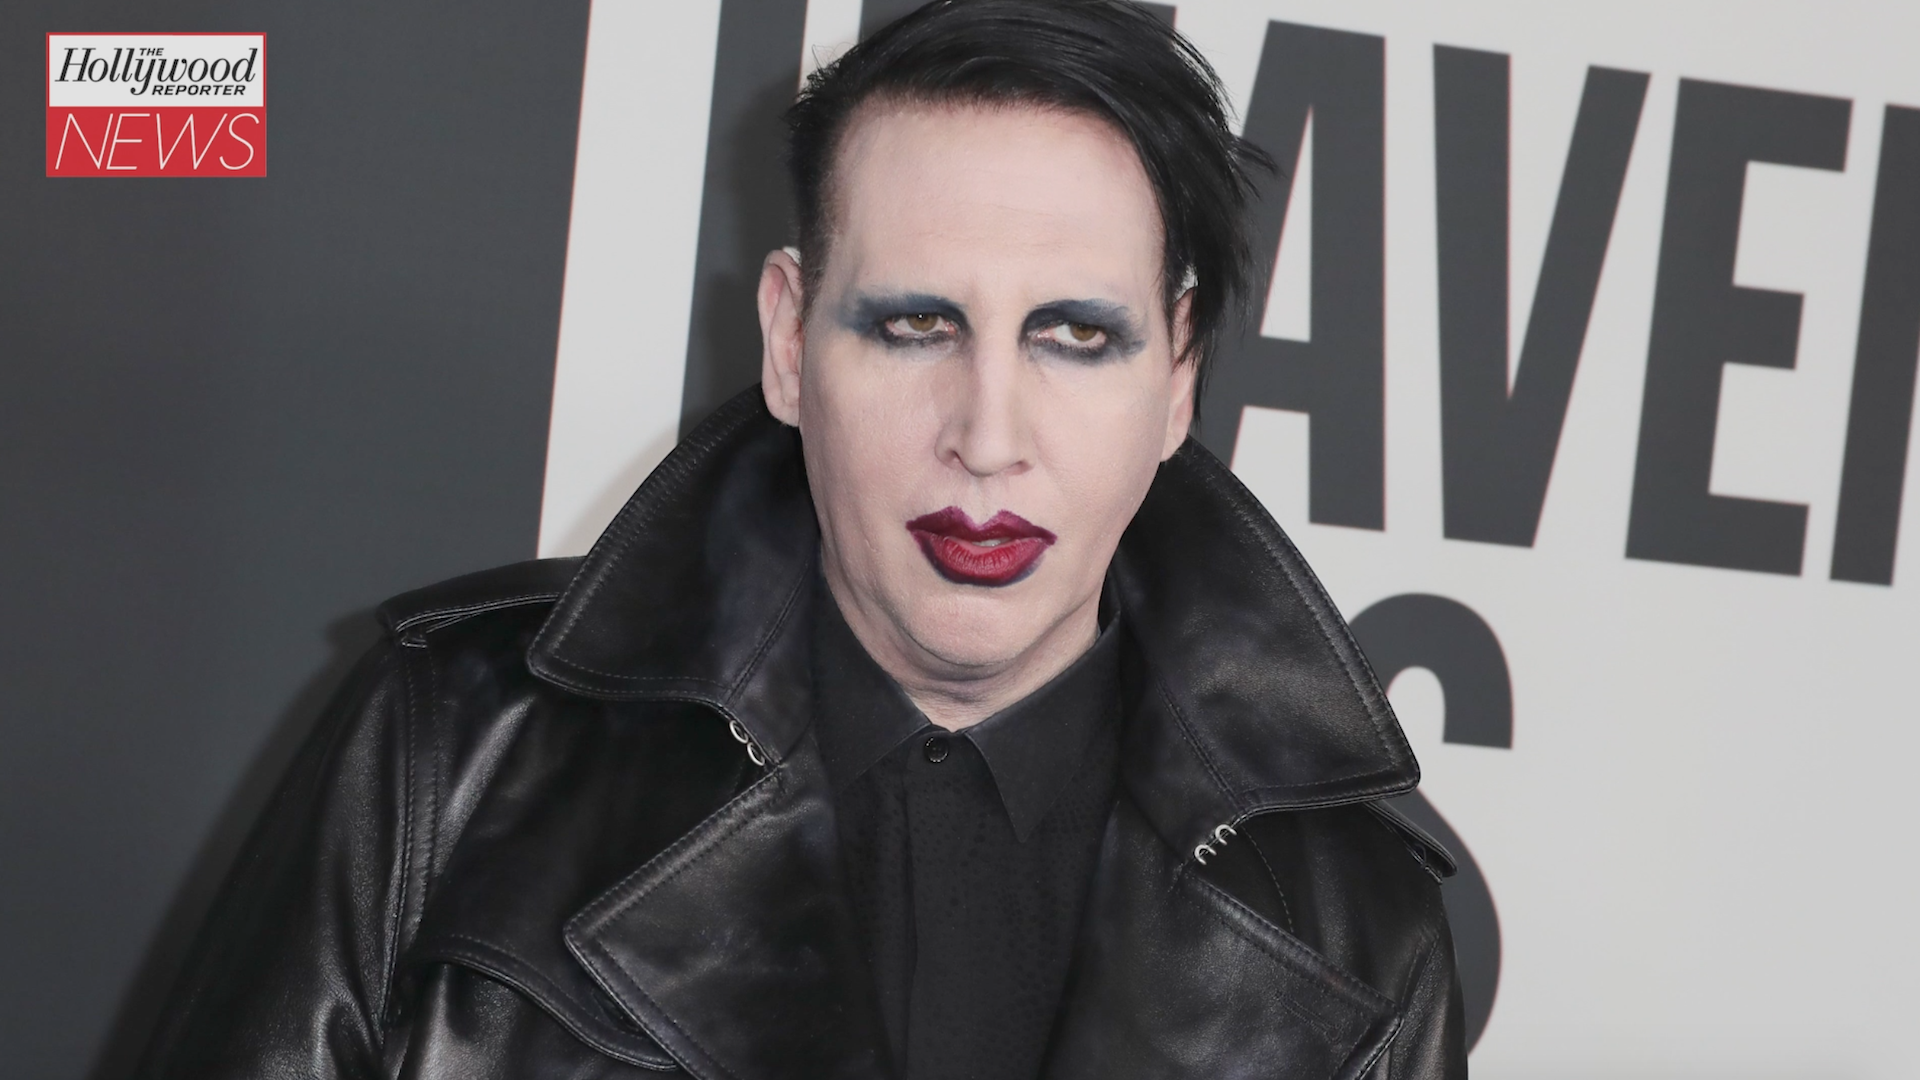 L.A. Sheriff's Department Investigating Marilyn Manson Abuse Allegations